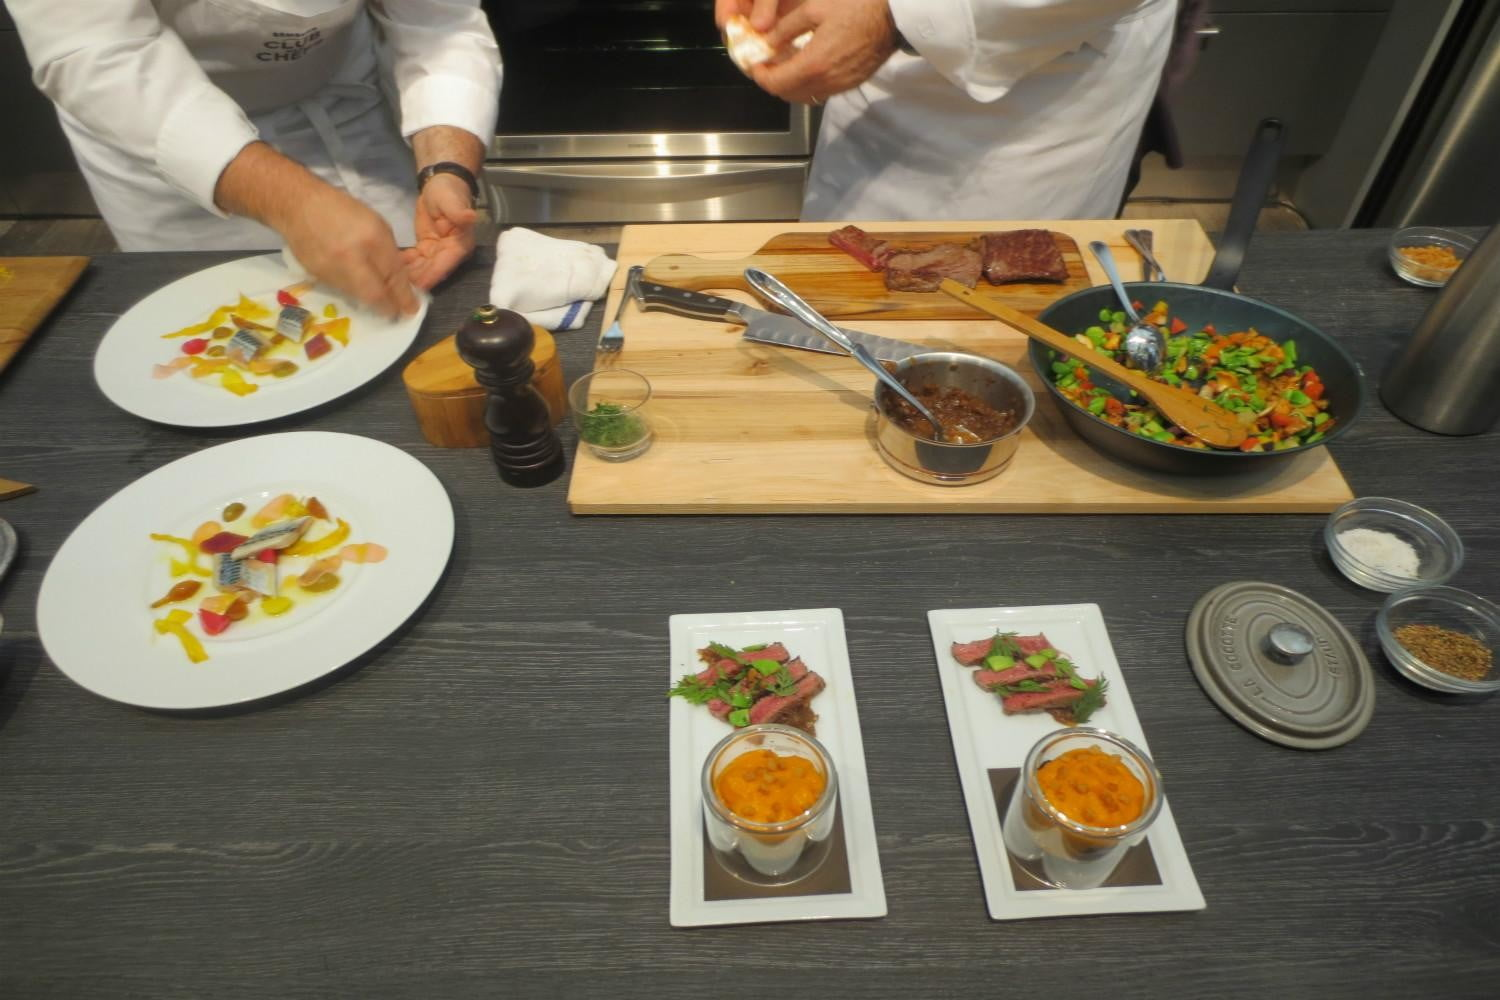 samsung teams top notch chefs celebrate launch new home gear img 0776